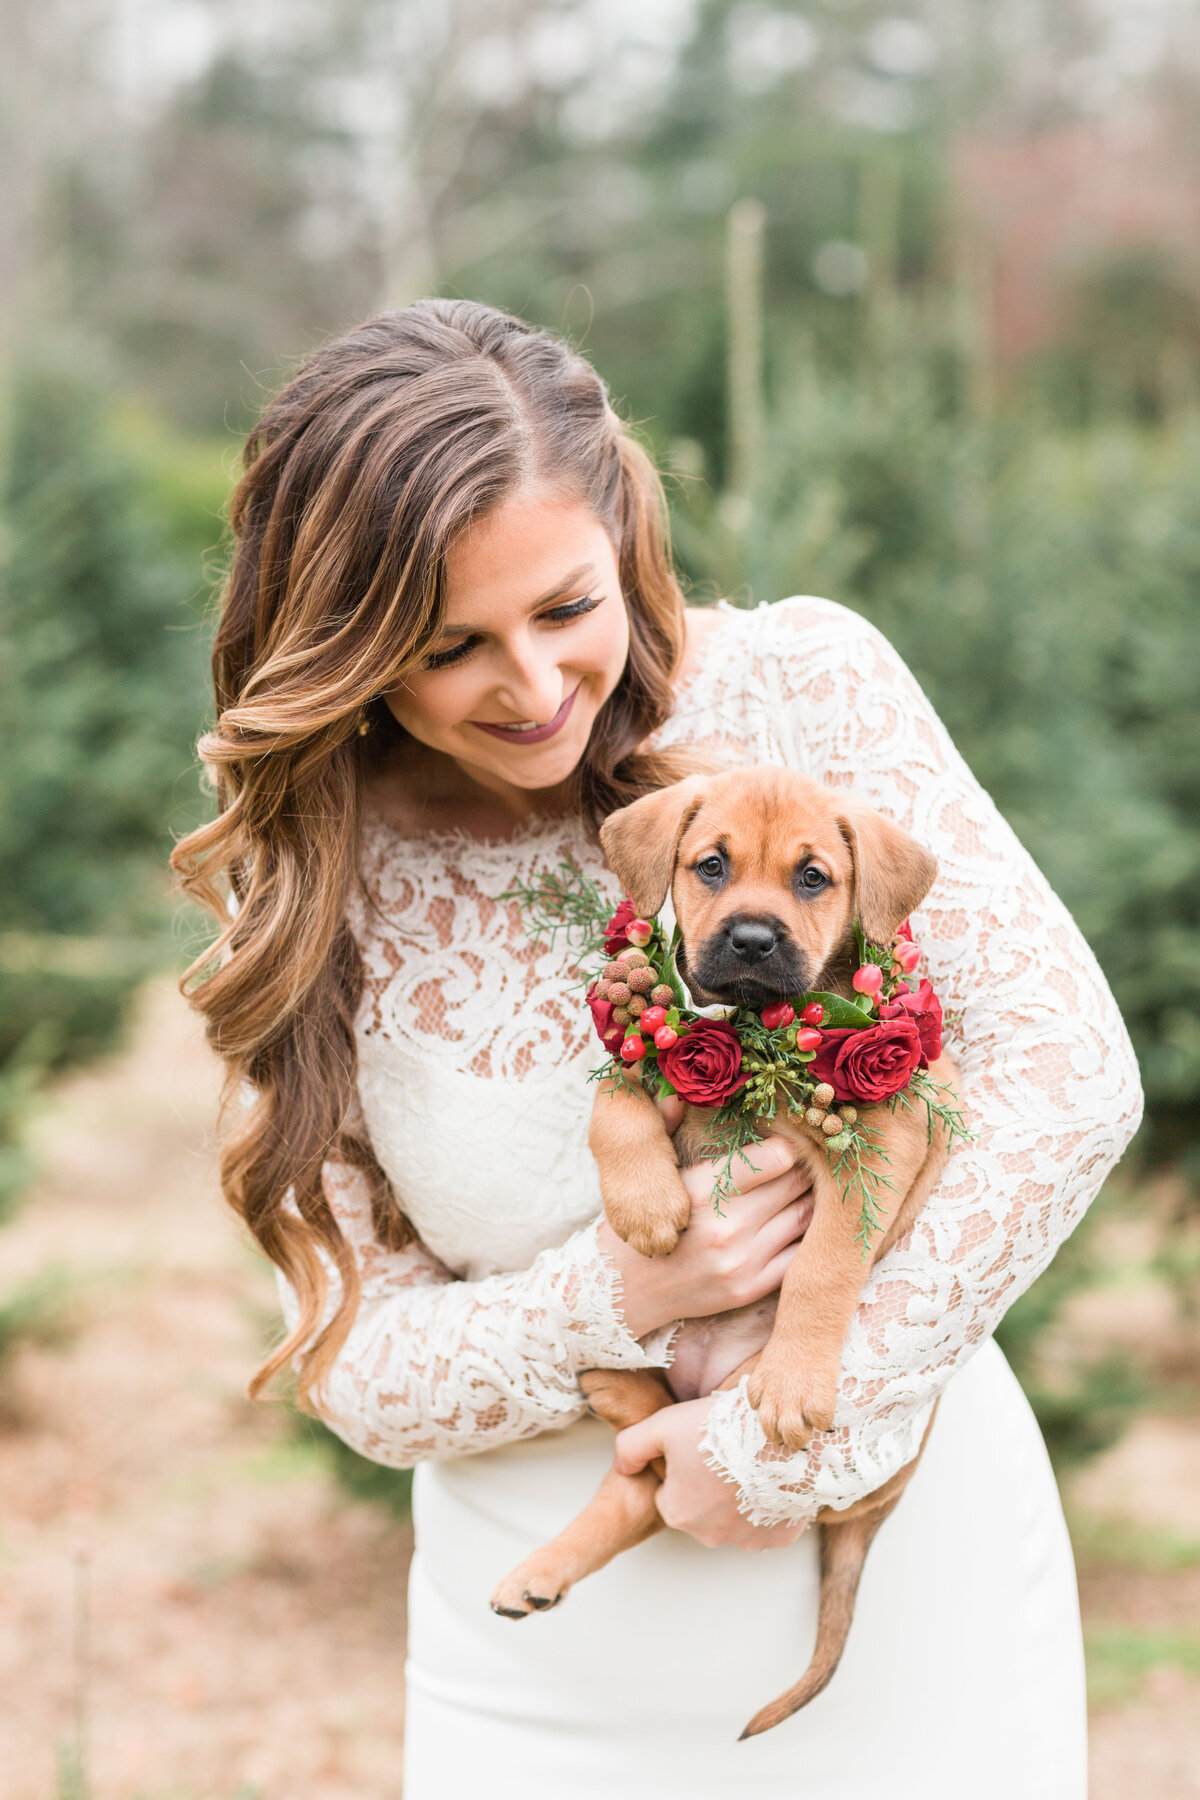 Bride holding an adoptable puppy in a flower collar